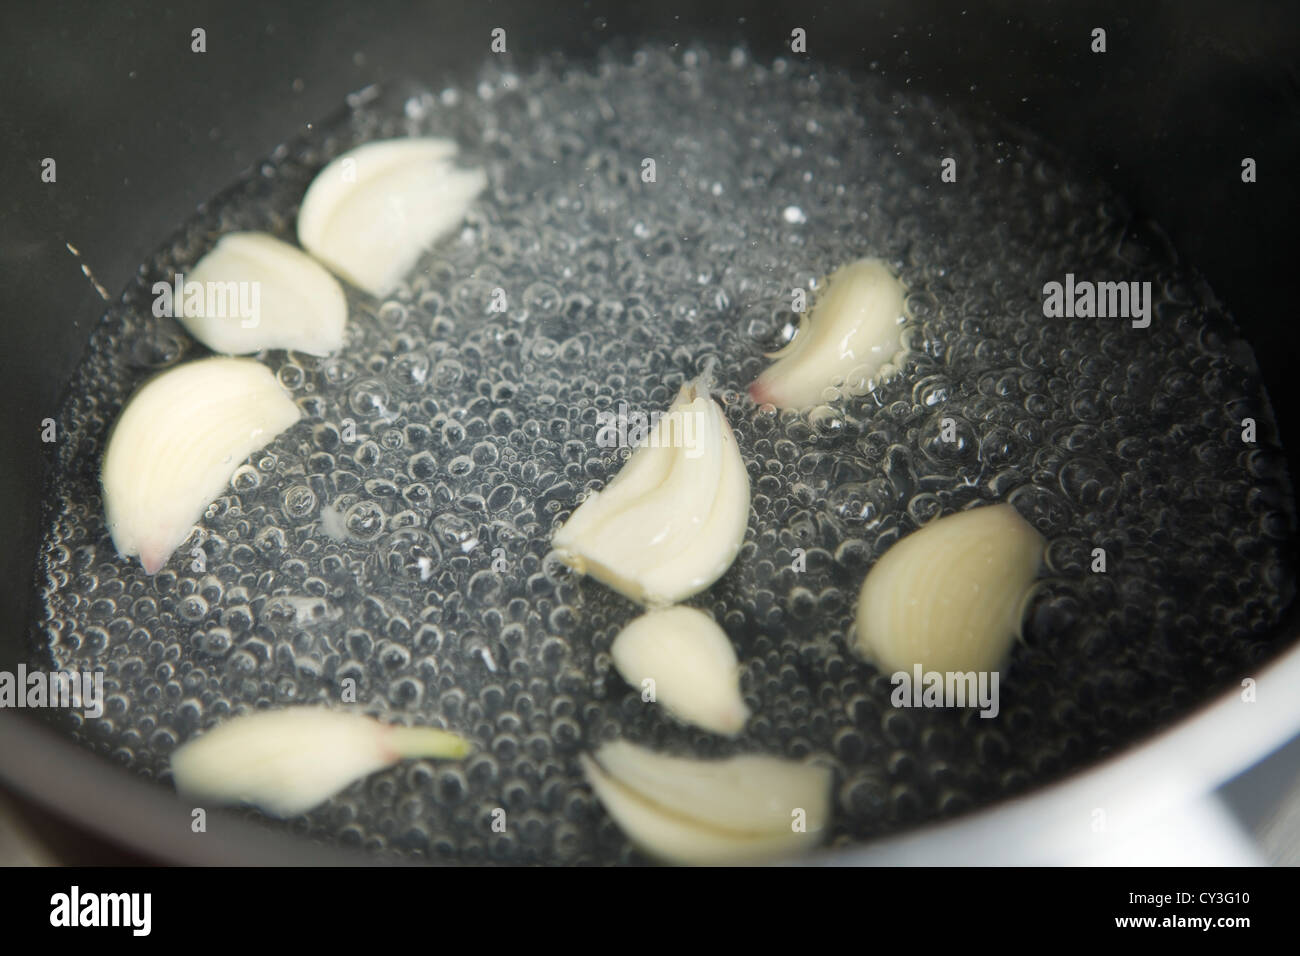 Simmering garlic cloves in water. - Stock Image